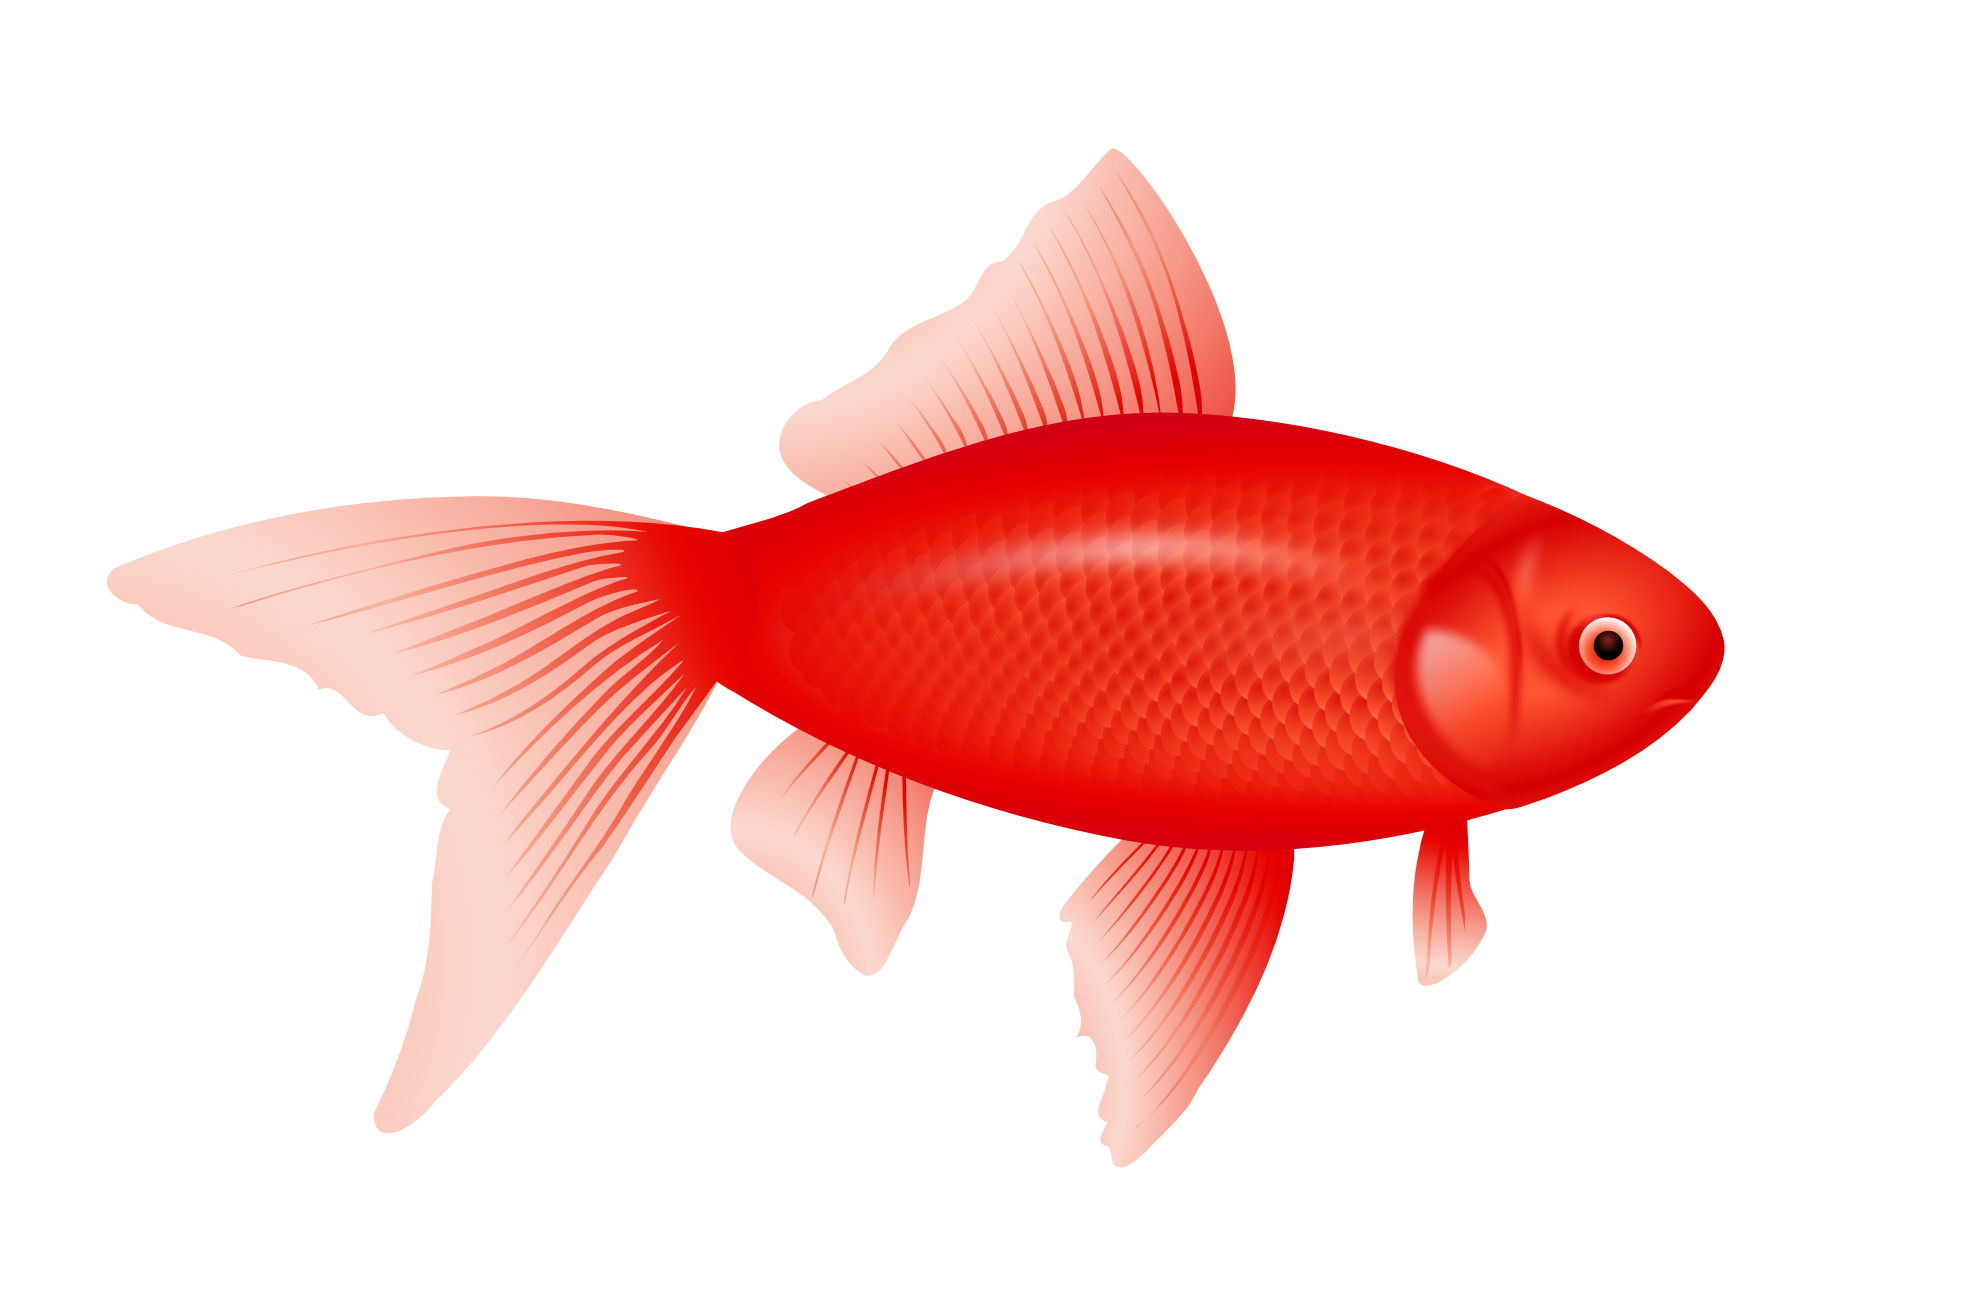 Grey fish clipart graphic transparent stock Fish Six | Isolated Stock Photo by noBACKS.com graphic transparent stock